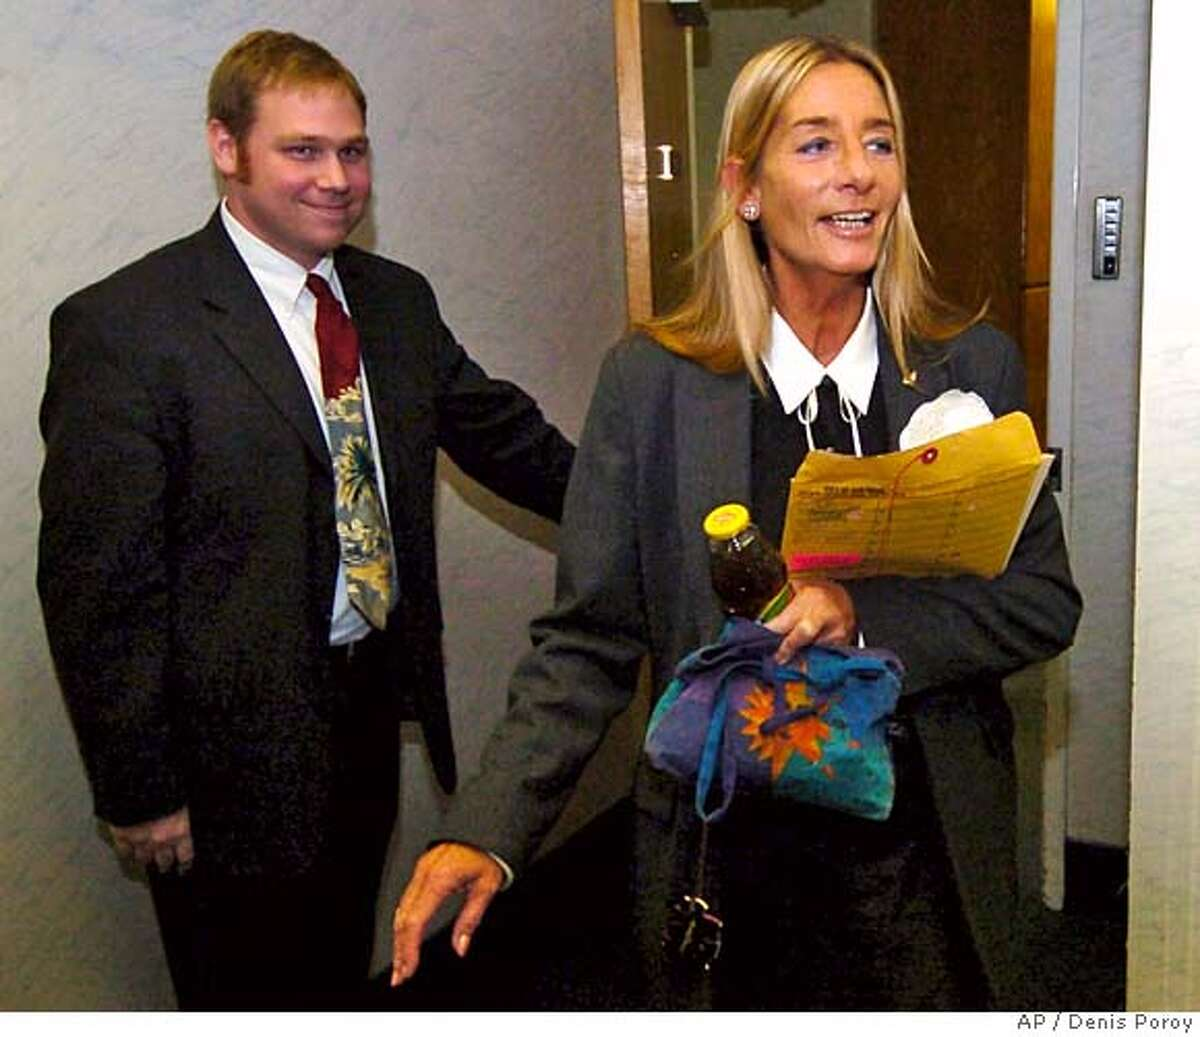 Candidate for San Diego Mayor, Donna Fyre, right, comes out of her office before reading a statement in reaction to the decision in Superior Court in San Diego, Monday, Nov. 22, 2004. A retired judge refused Monday to intervene in the city's mayoral election, where Mayor Dick Murphy has claimed victory over Fyre, a maverick city councilwoman who mounted a surprising write-in bid. (AP Photo/Denis Poroy) Metro#Metro#Chronicle#11/23/2004#ALL#5star#b2#0422481267